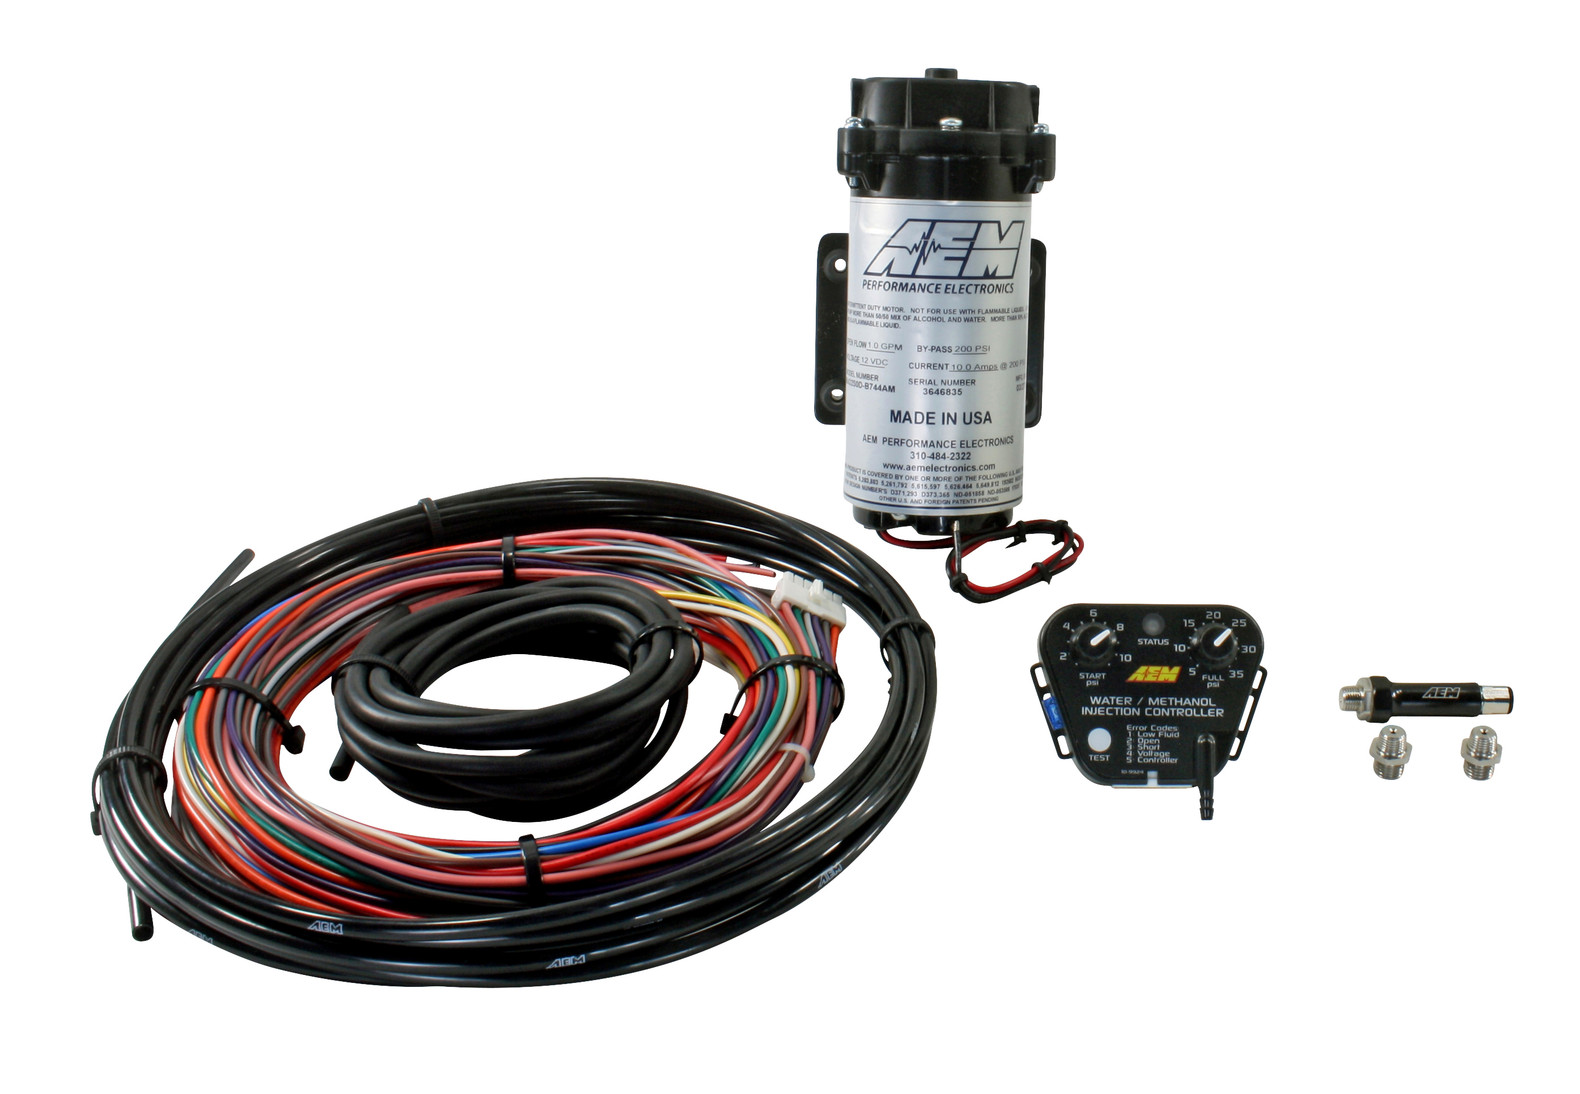 AEM Electronics 30-3302 V2 Water/Methanol Injection Kit No Tank Replacement  Parts Engines & Engine Parts g2-publicidad.com   Aem Water Methanol Wiring Harness      G2 Publicidad